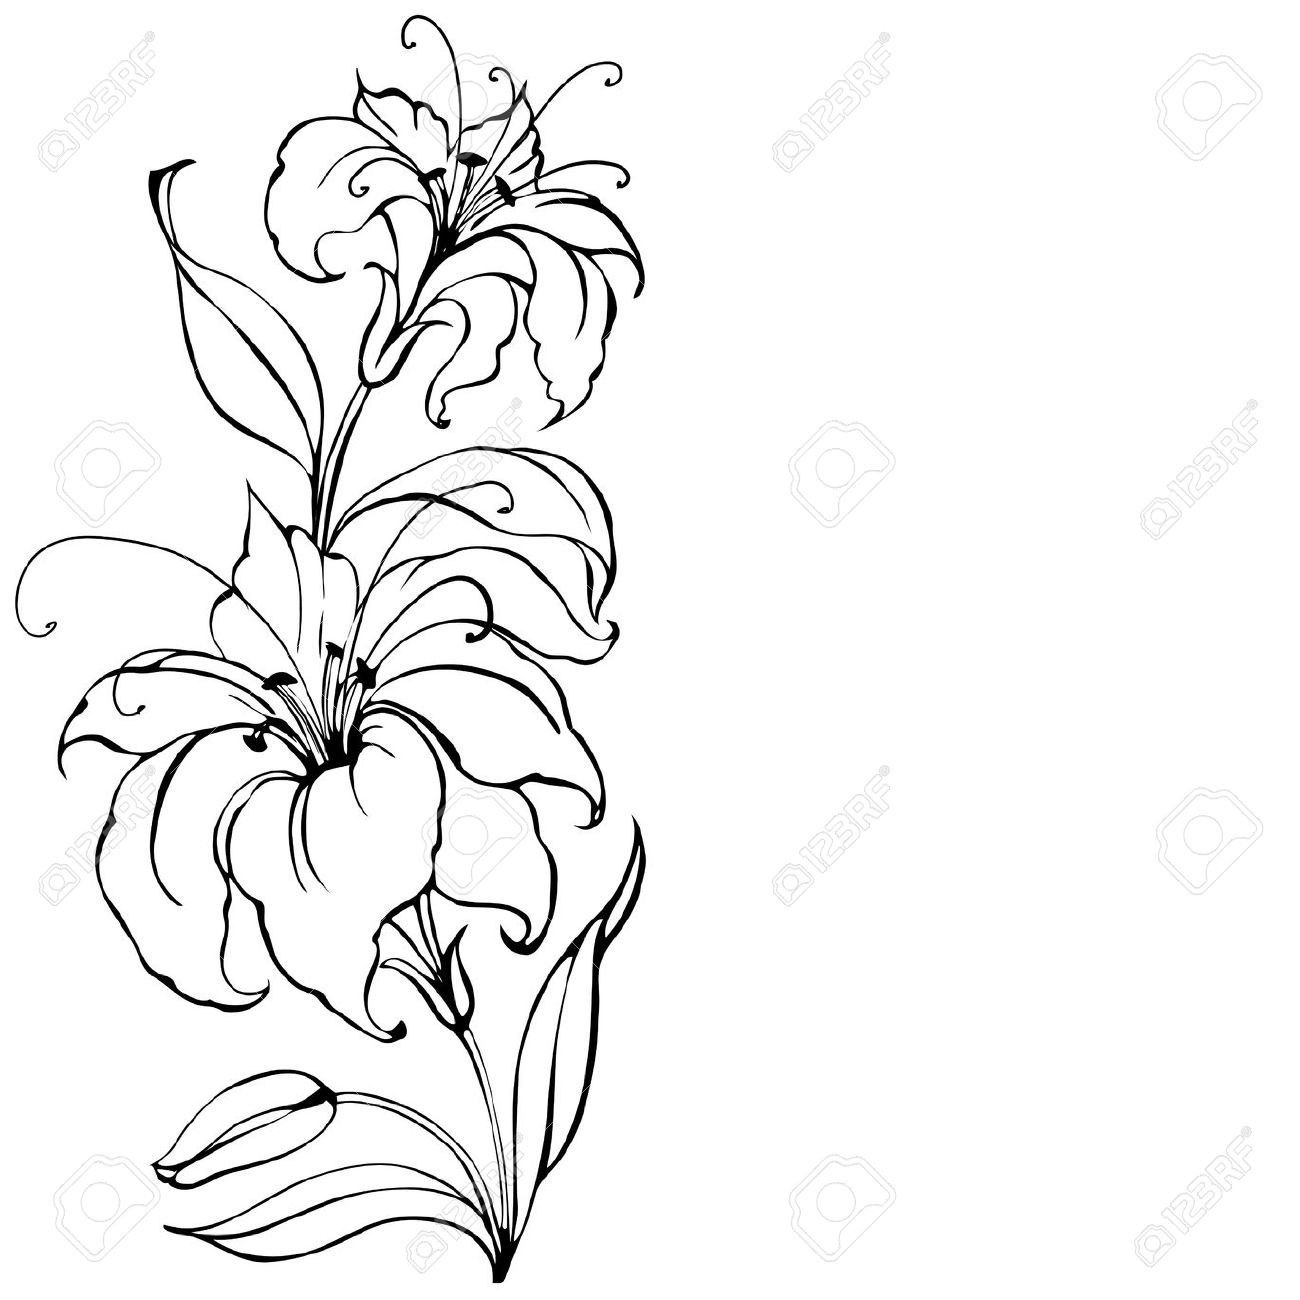 Lily Tattoo Line Drawing : Lily flower royalty free cliparts vectors and stock